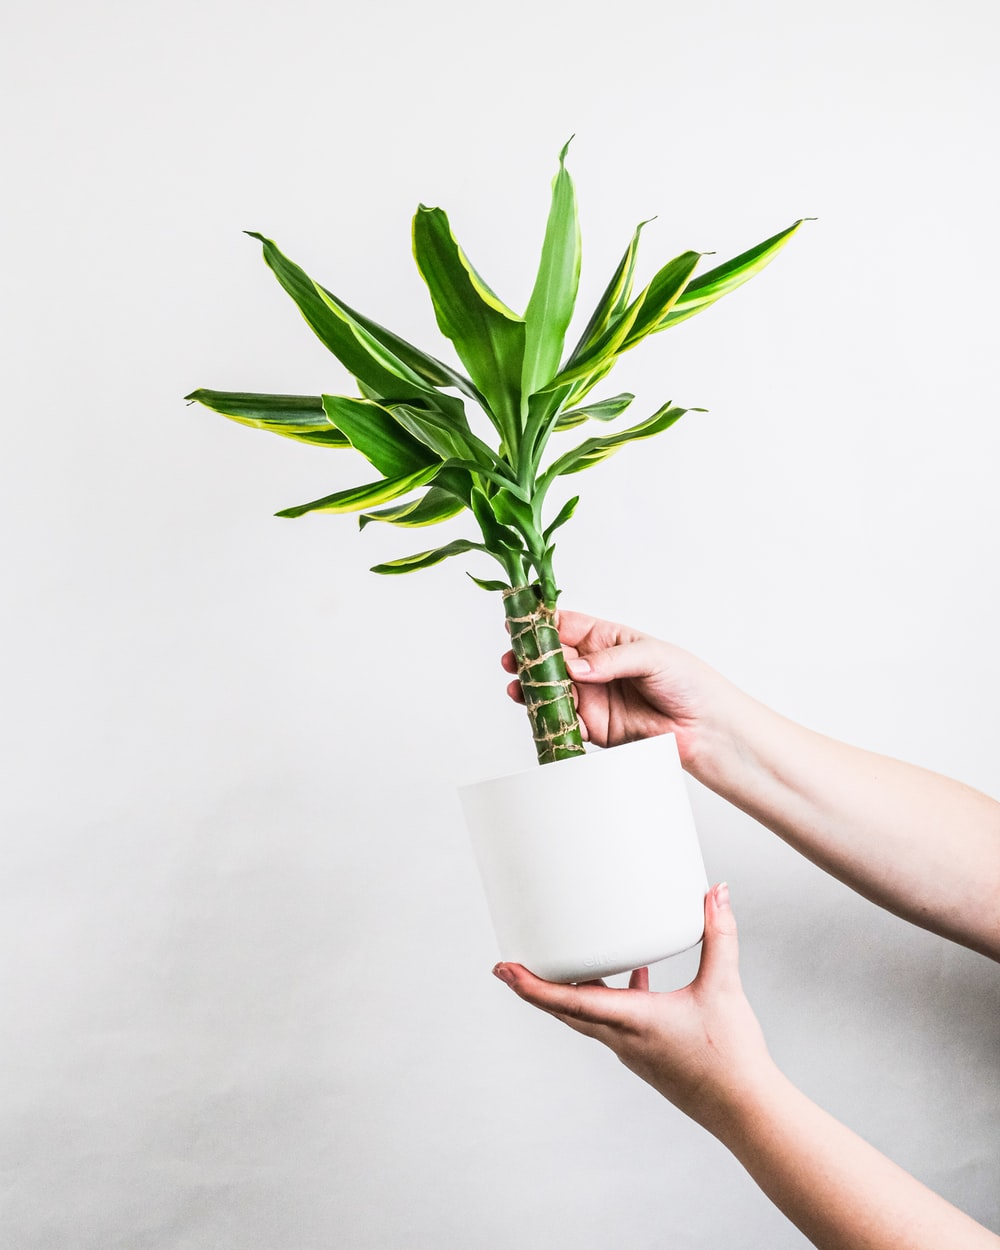 Dracaena Pictures | Download Free Images on Unsplash